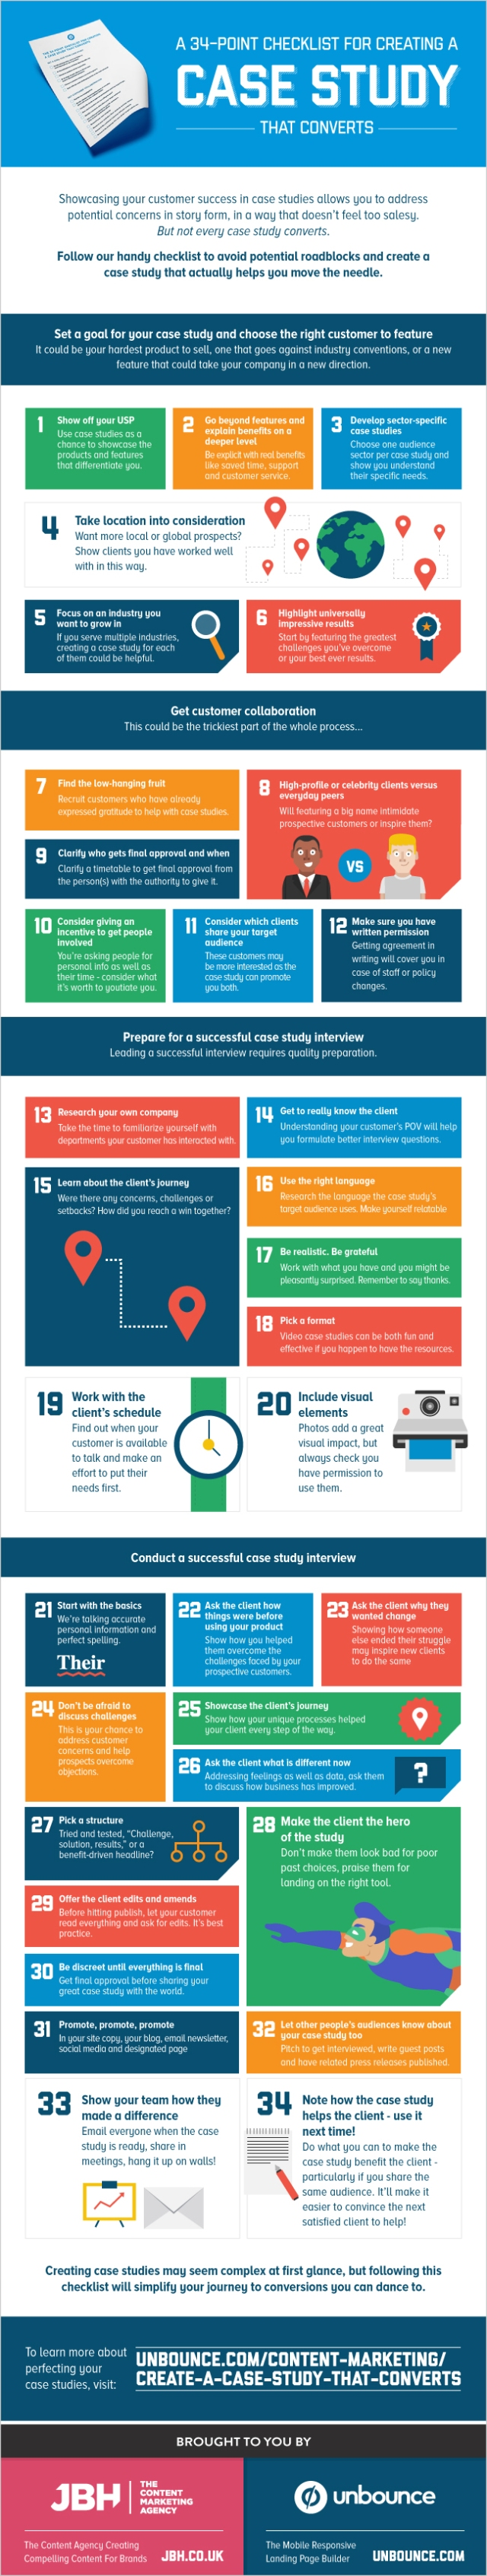 34-steps-to-create-case-studies-that-really-impress-website-visitors